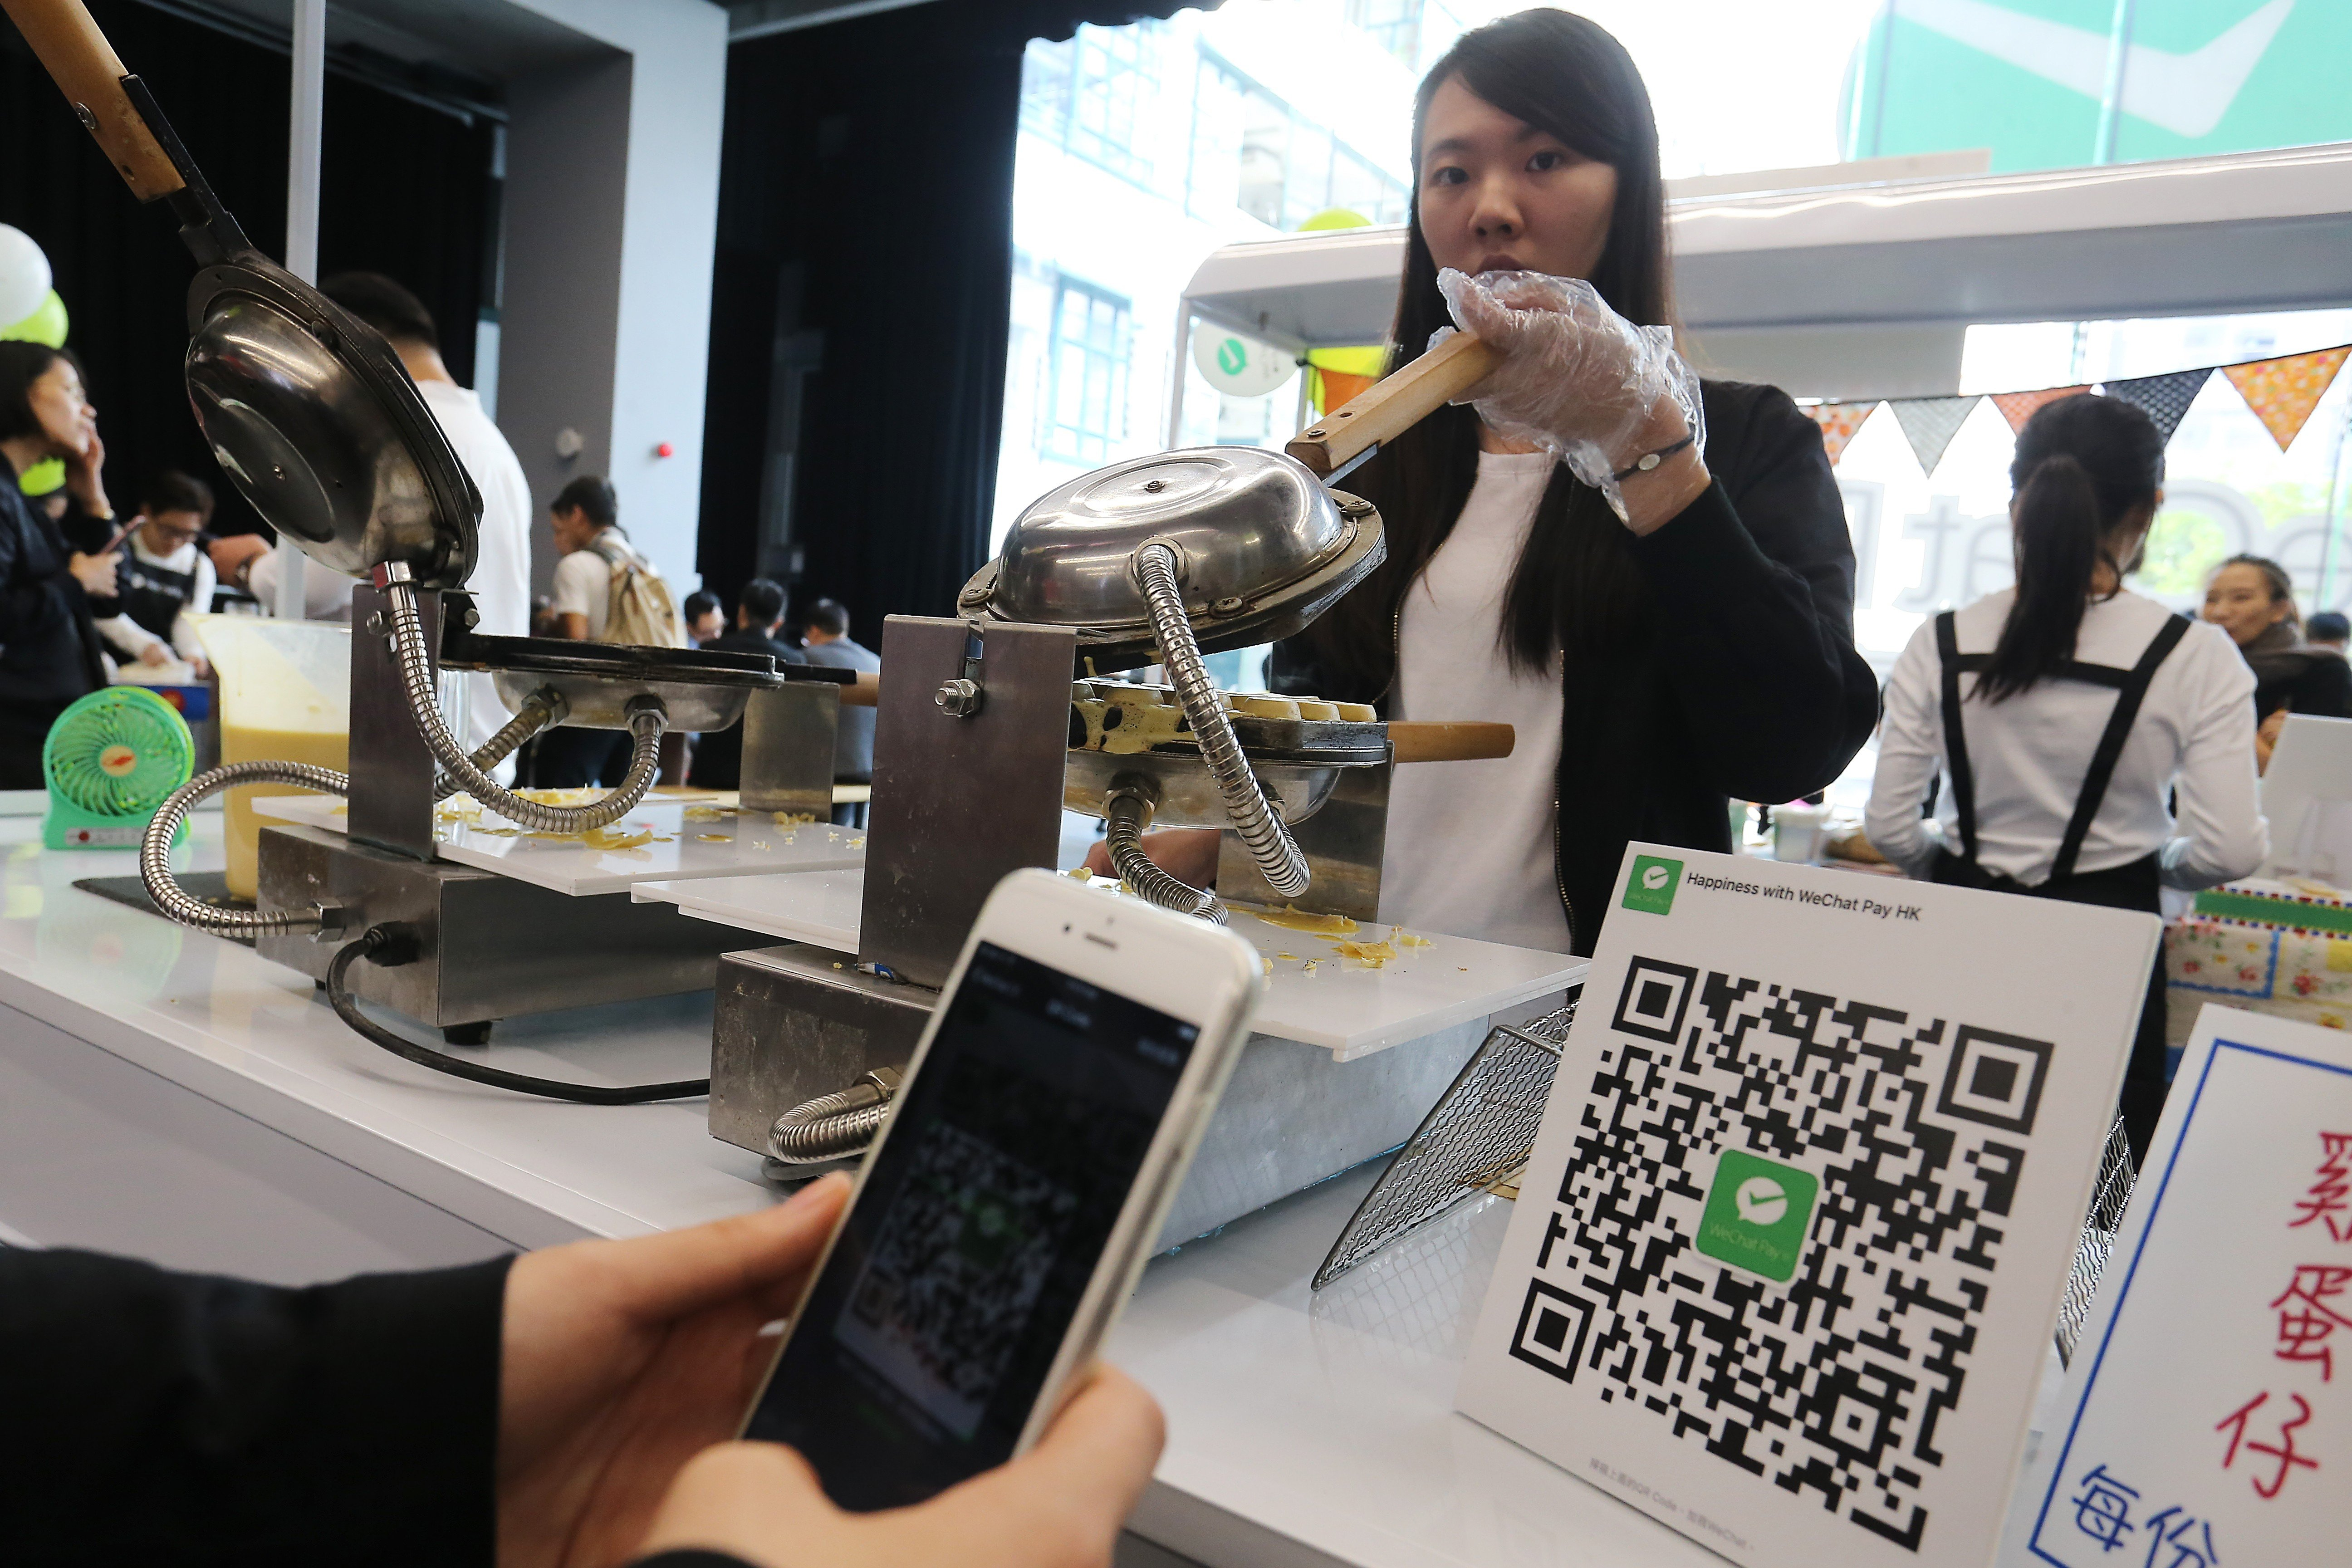 Singapore e-wallet NetsPay in talks with Tencent's WeChat Pay for